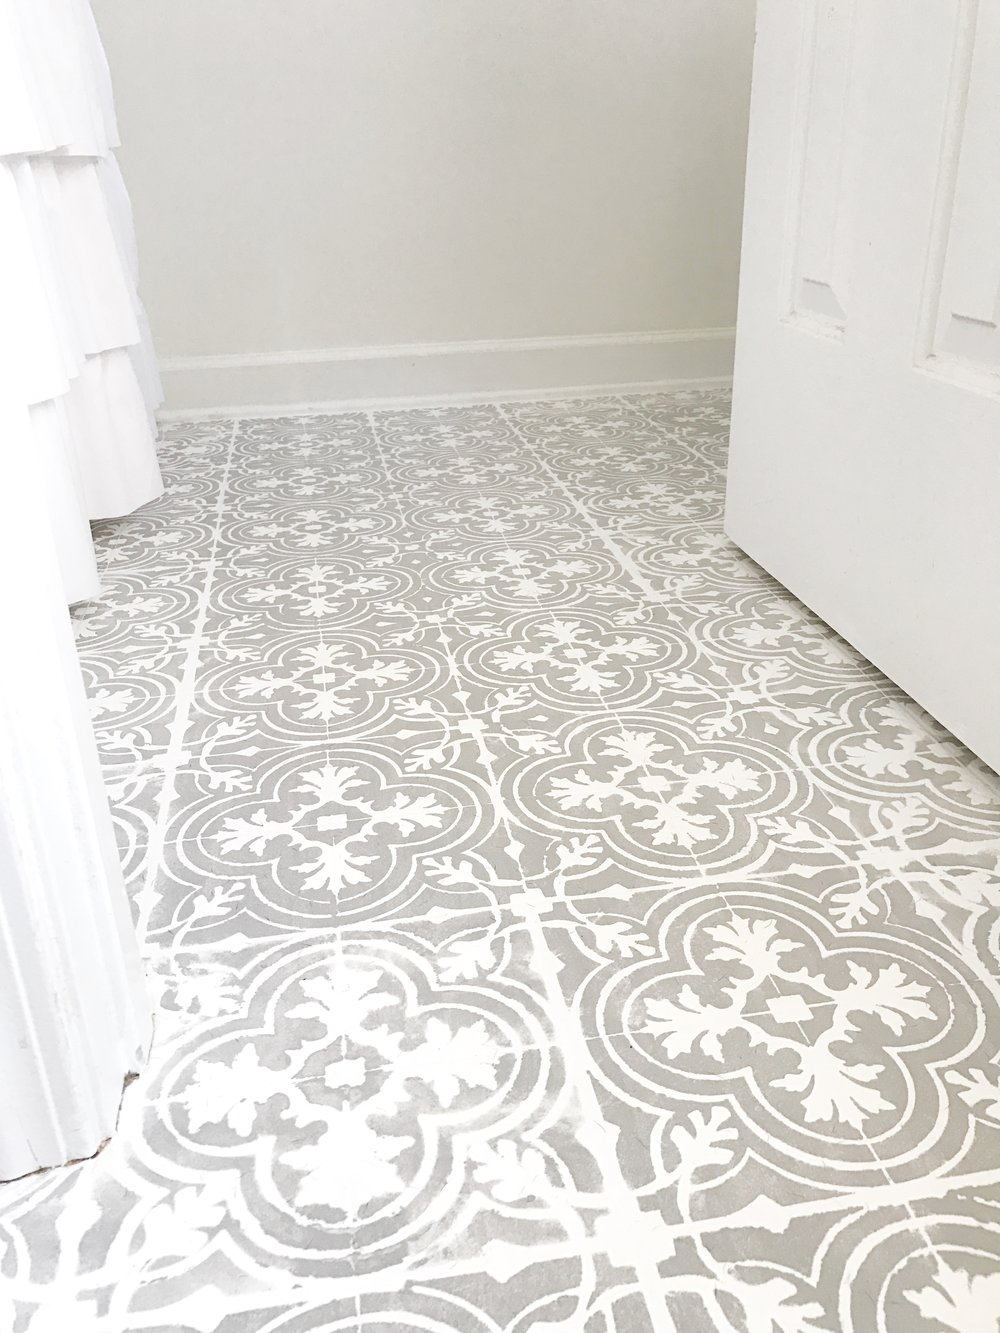 DIY Tutorial   How To Paint Your Linoleum Or Tile Floors To Look Like  Patterned